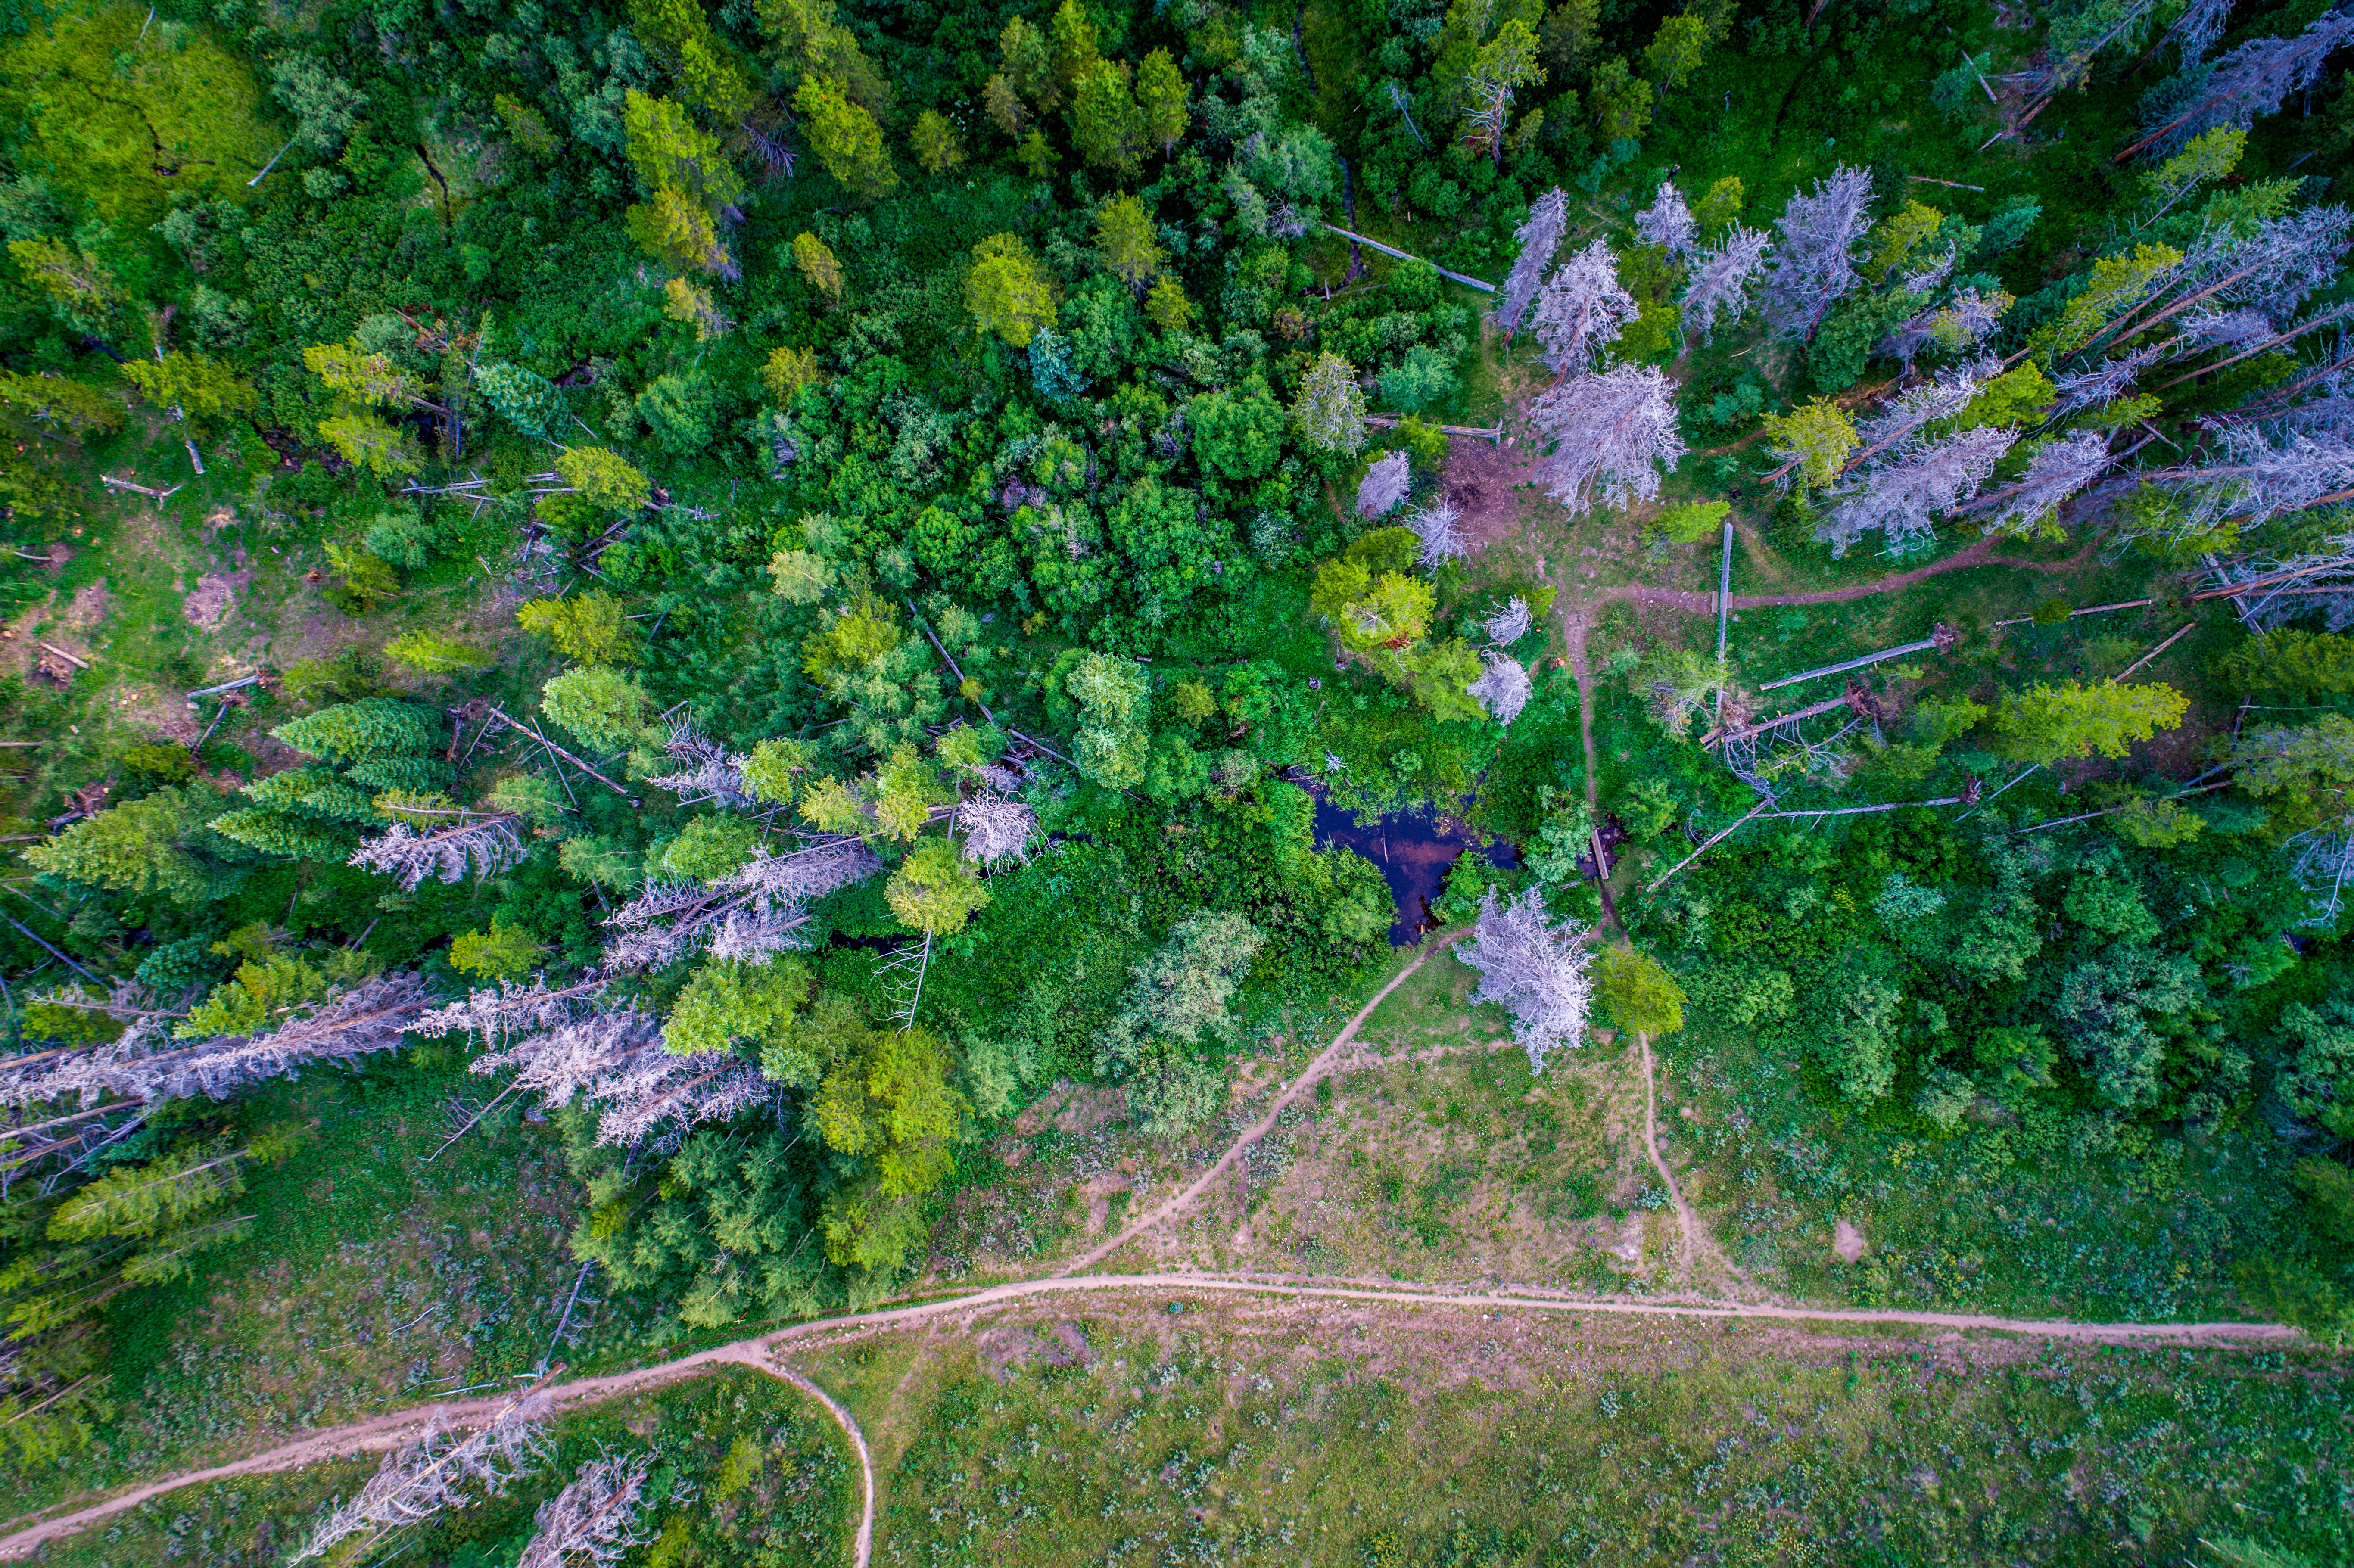 A drone shot of  narrow paths near a group of dead gray trees in a lush green forest